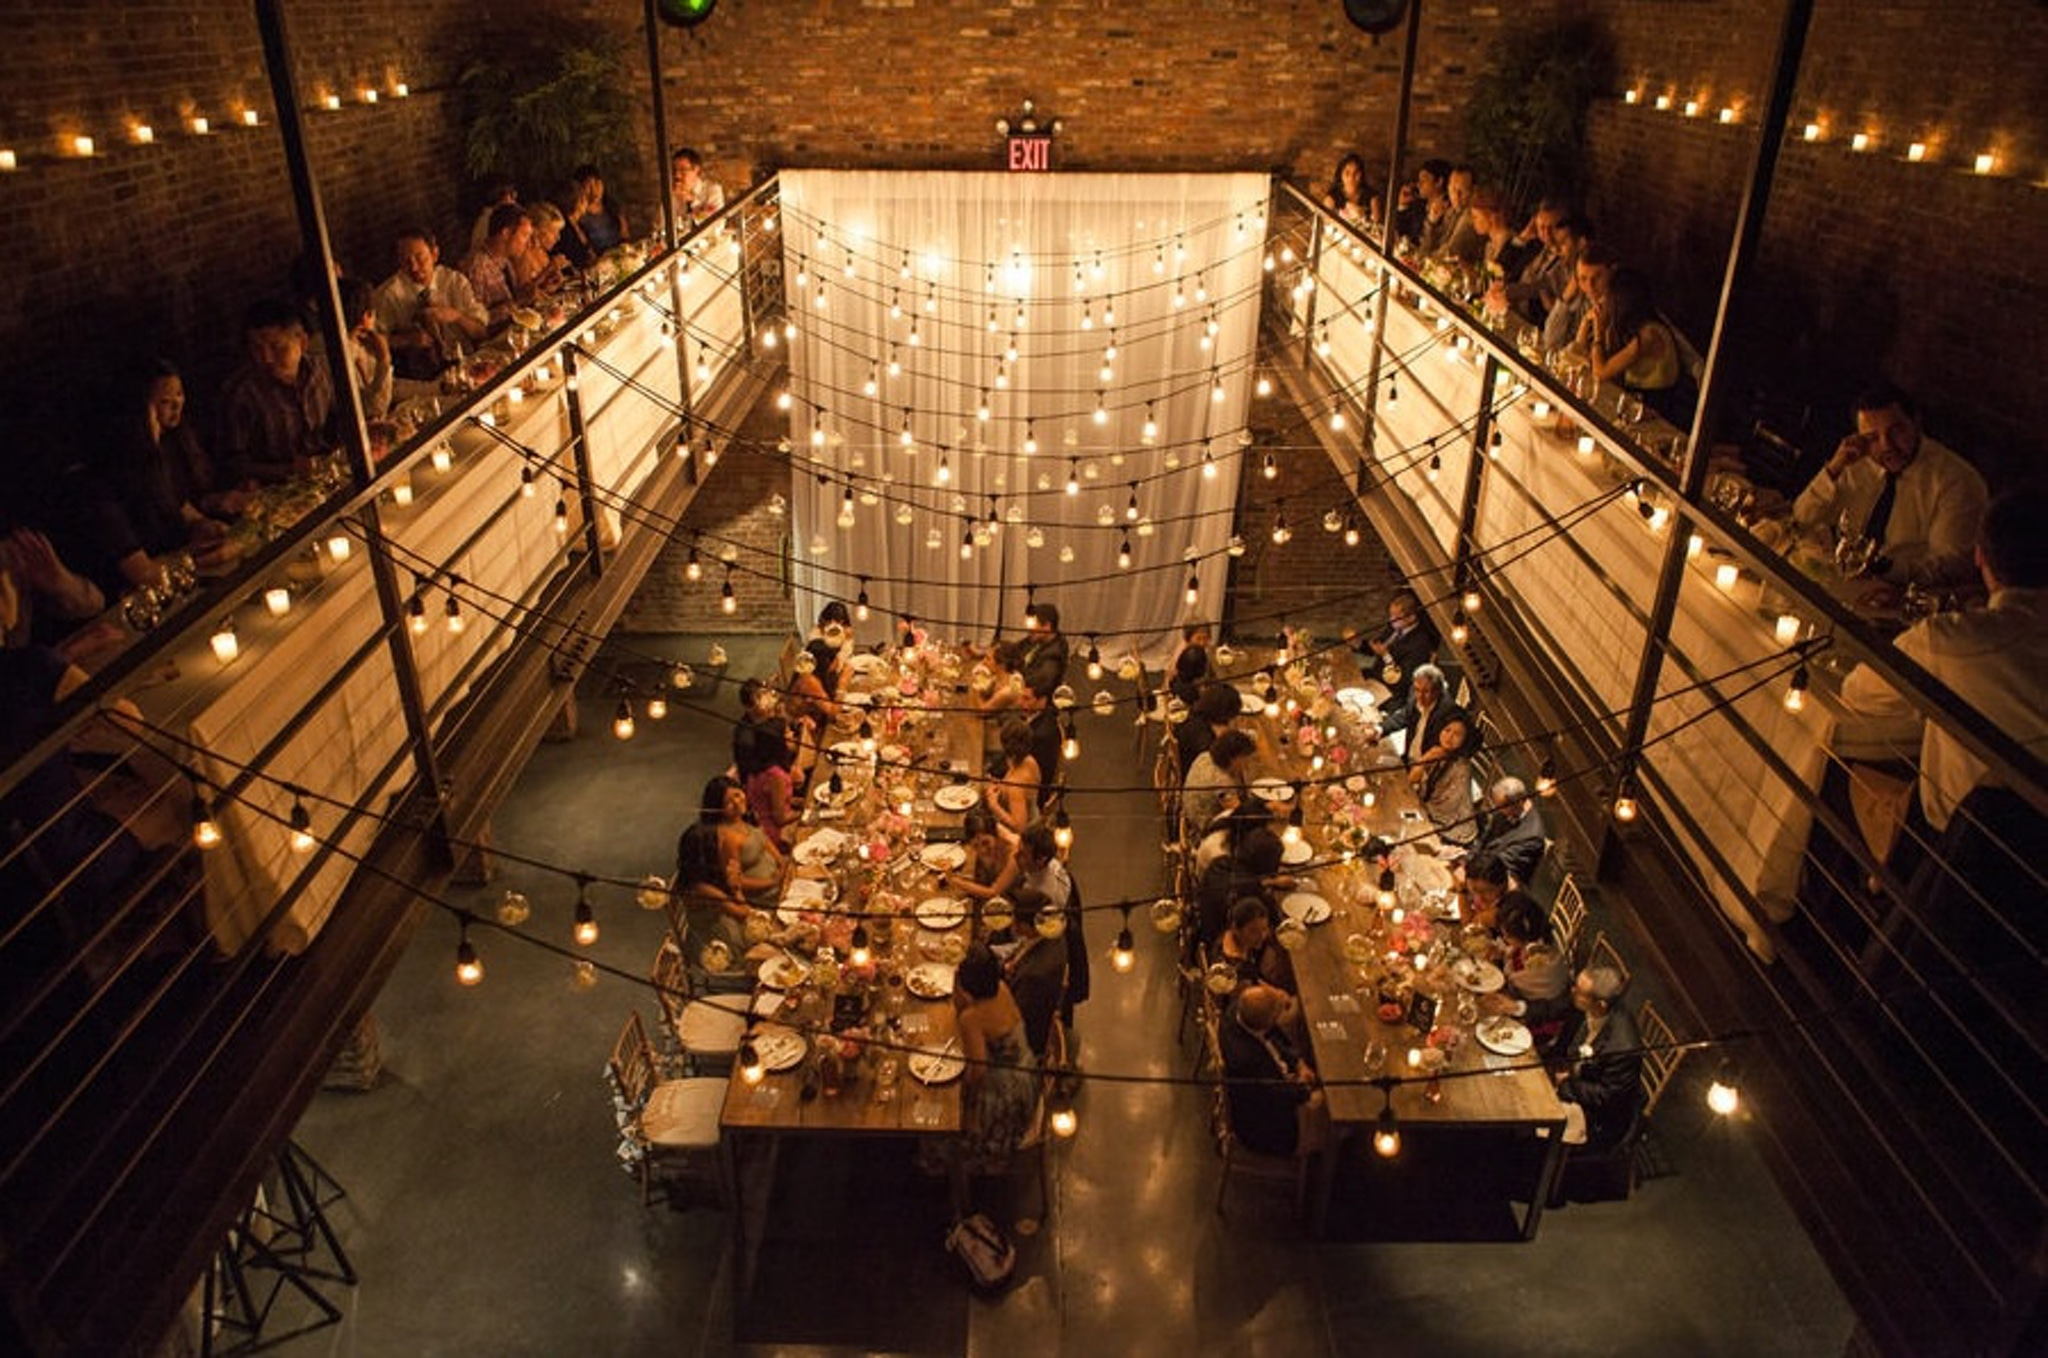 New York event space - The Foundry